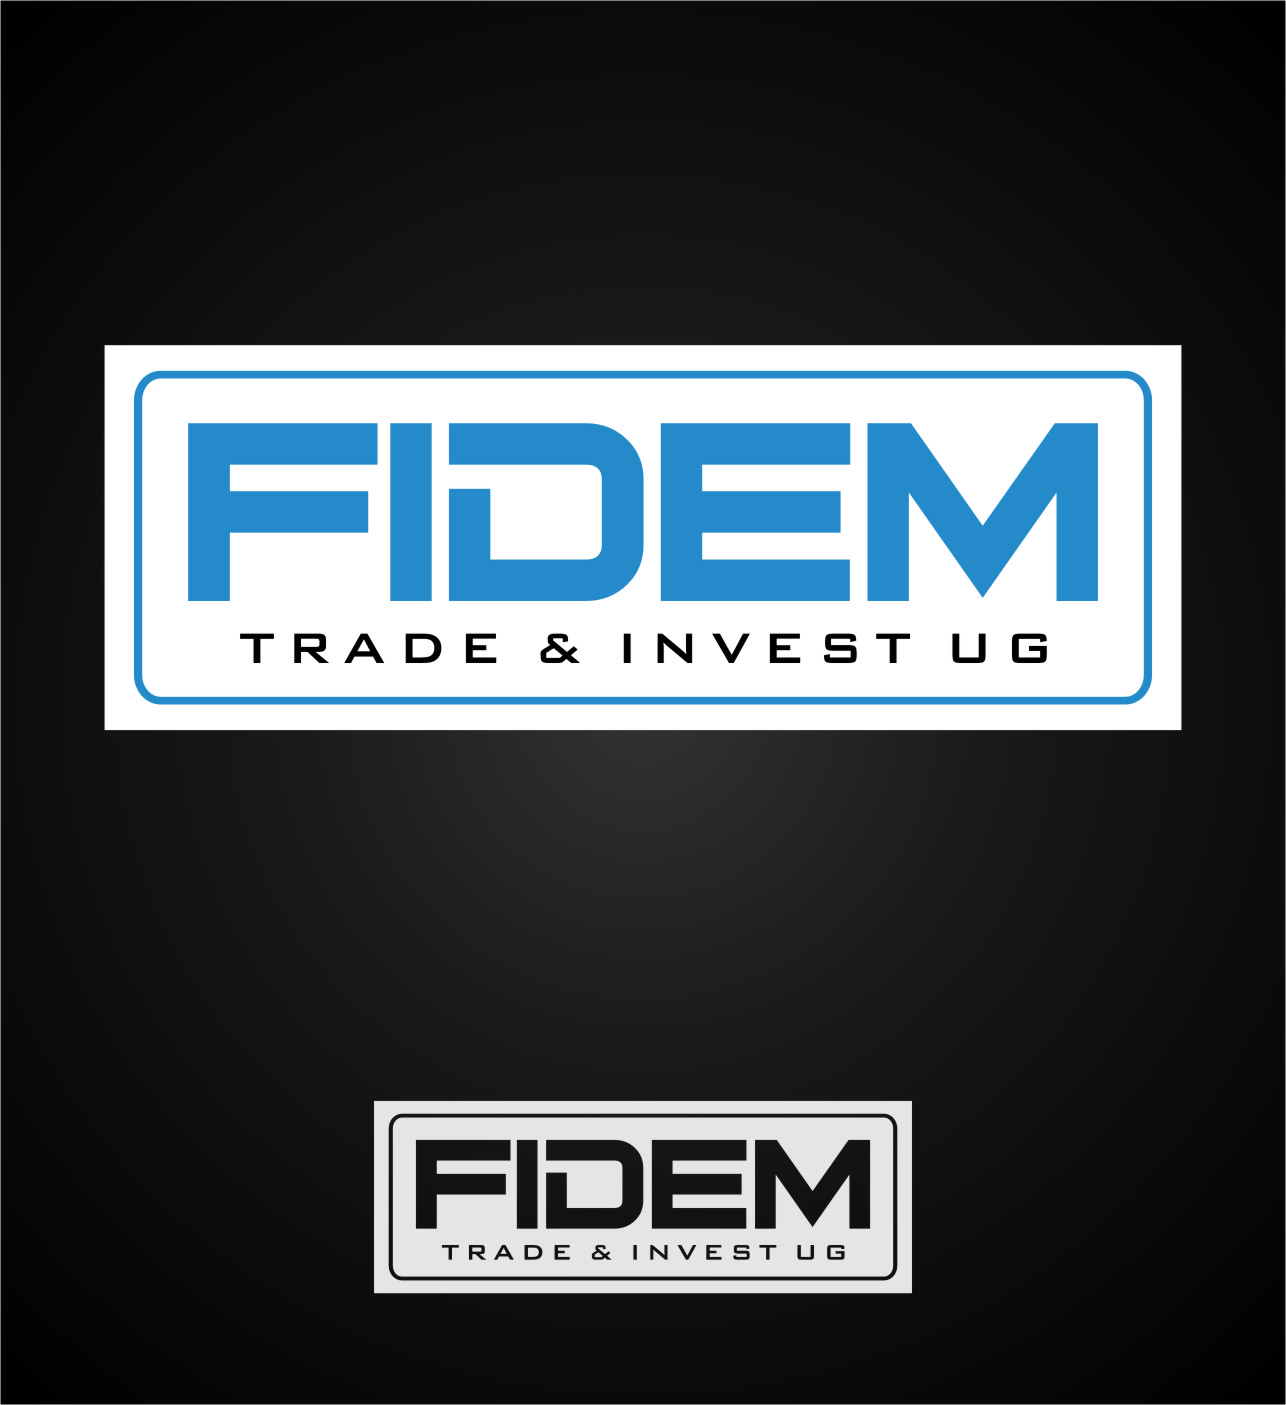 Logo Design by Ngepet_art - Entry No. 362 in the Logo Design Contest Professional Logo Design for FIDEM Trade & Invest UG.